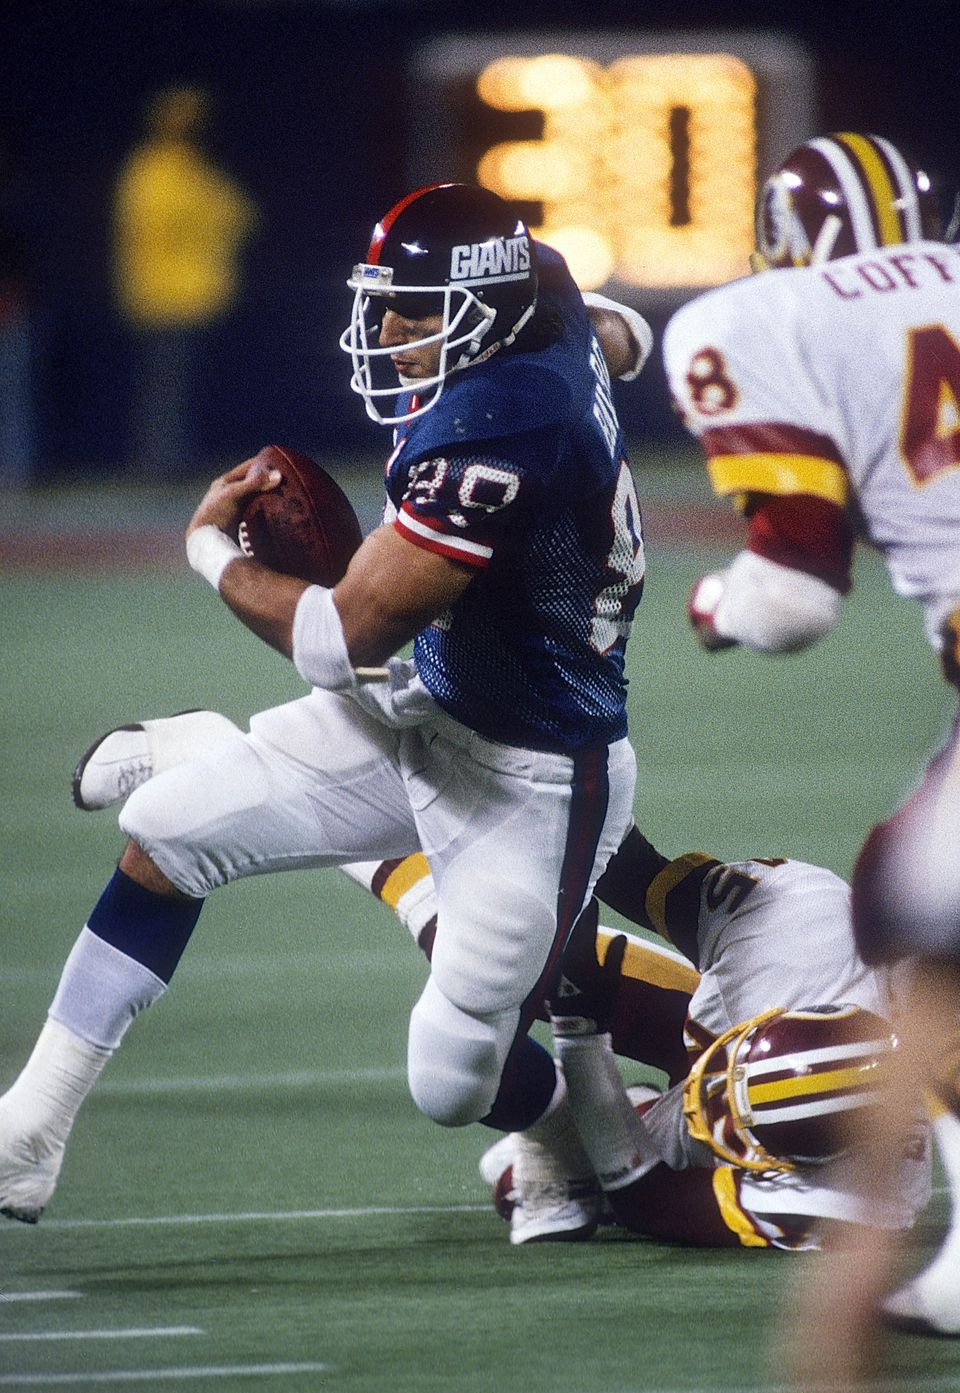 Two-time Super Bowl-winning tight end Mark Bavaro had a career similar to Rob Gronkowski's. It was also derailed by injuries.